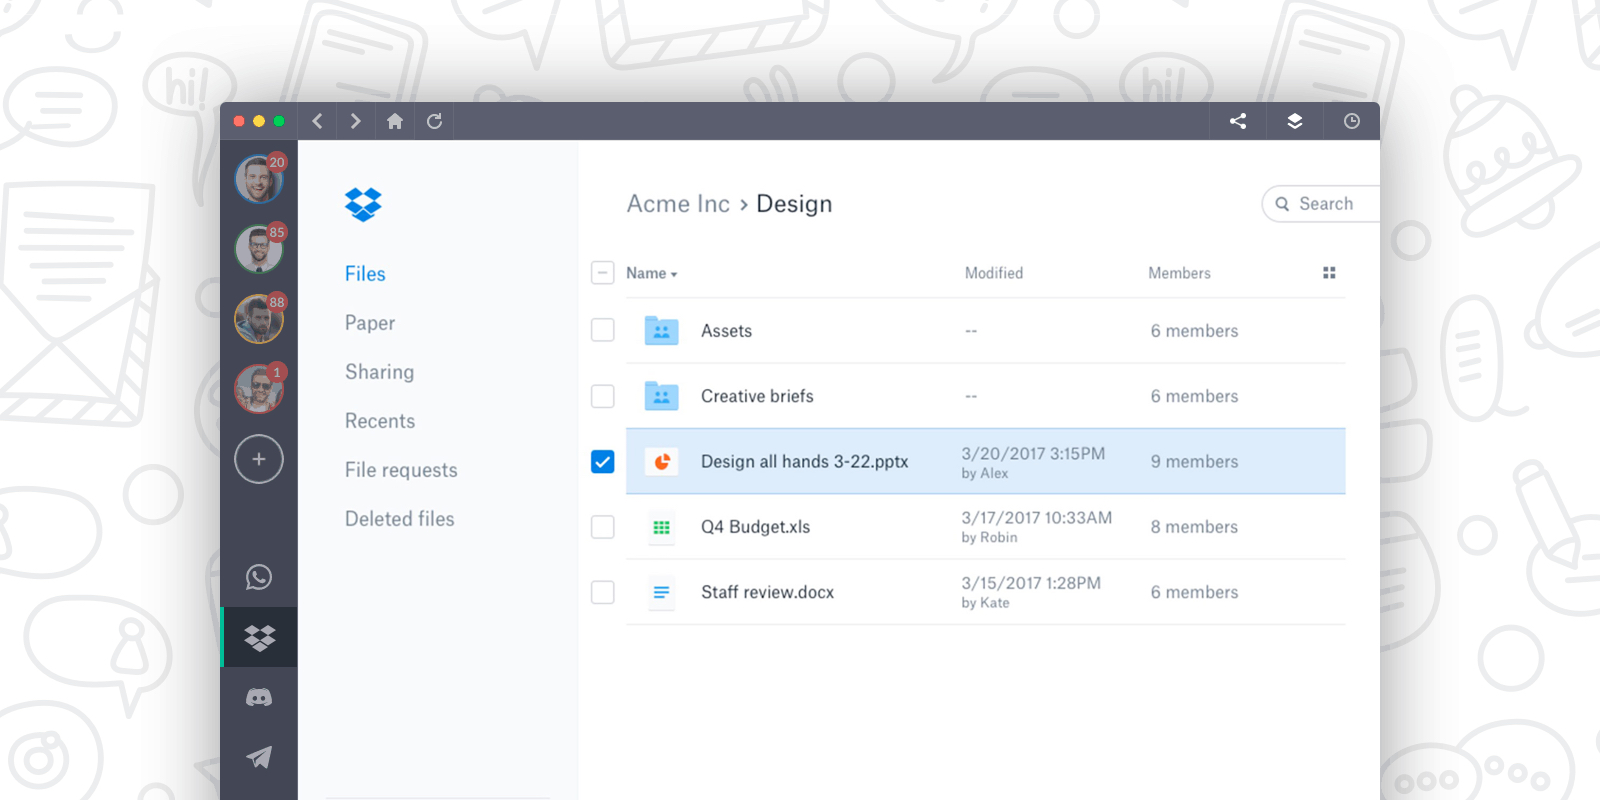 dropbox ui screenshot